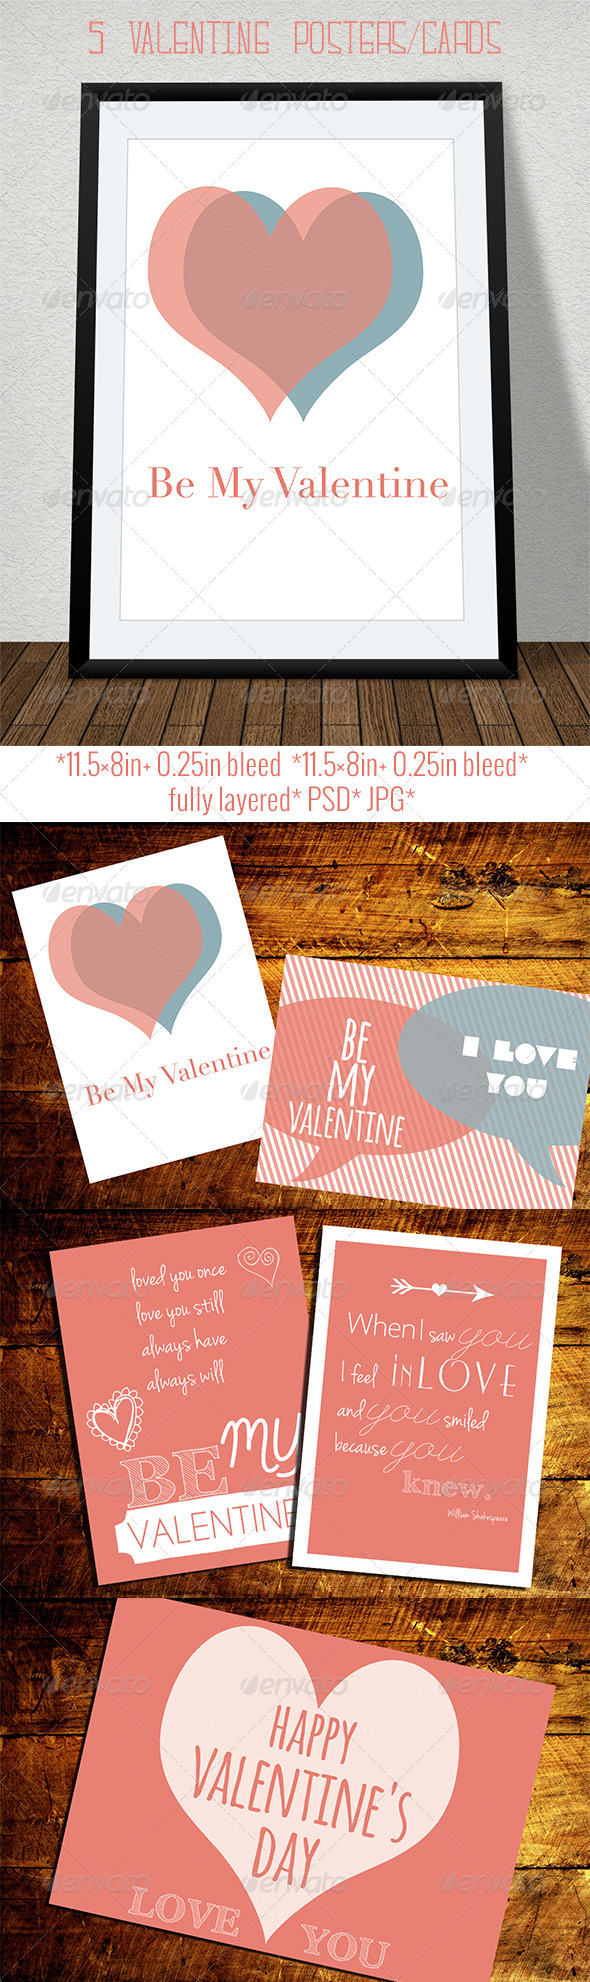 Set of Retro Valentine's Day Cards and Posters - Holiday Greeting Cards